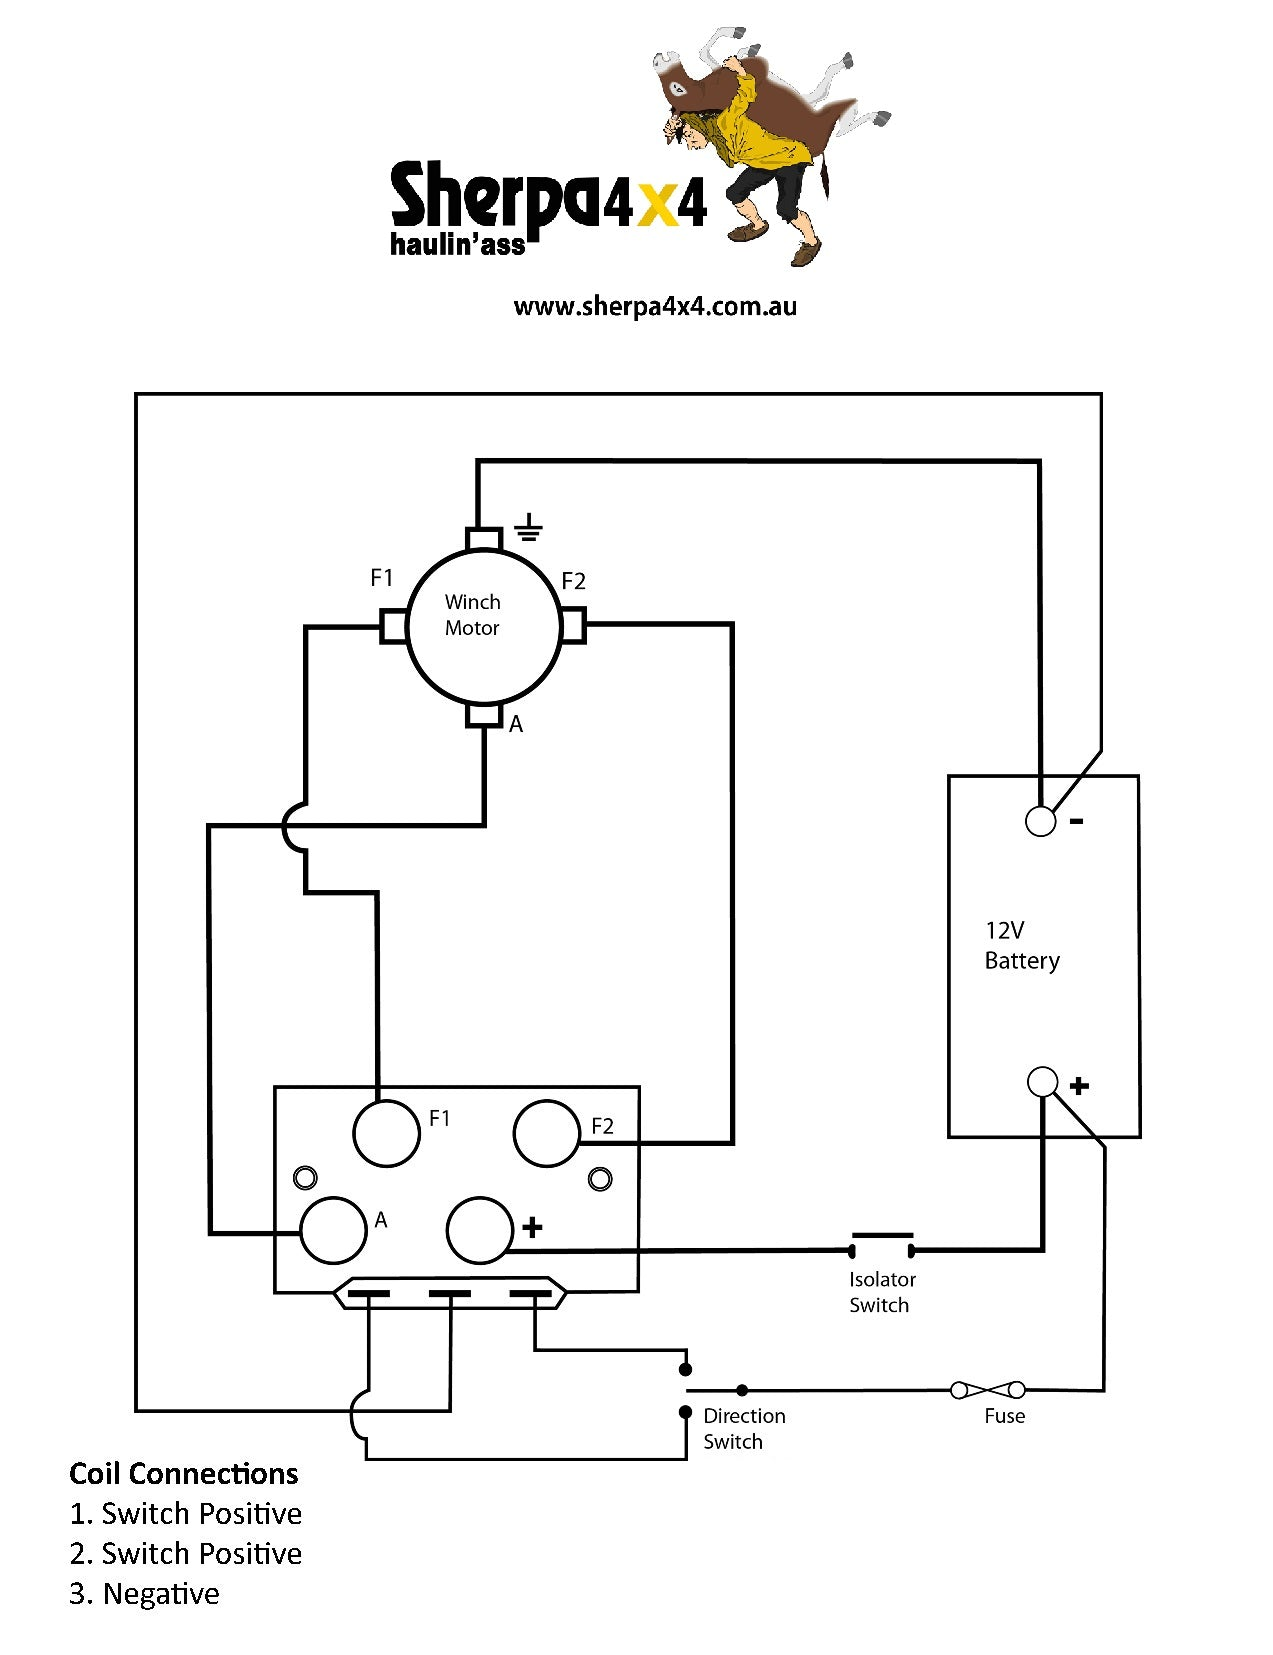 Sherpa_4x4_Winch_Wiring_Diagram?12240005484949772751 albright winch solenoid dc88p scintex australia warn winch wiring diagram solenoid at mifinder.co